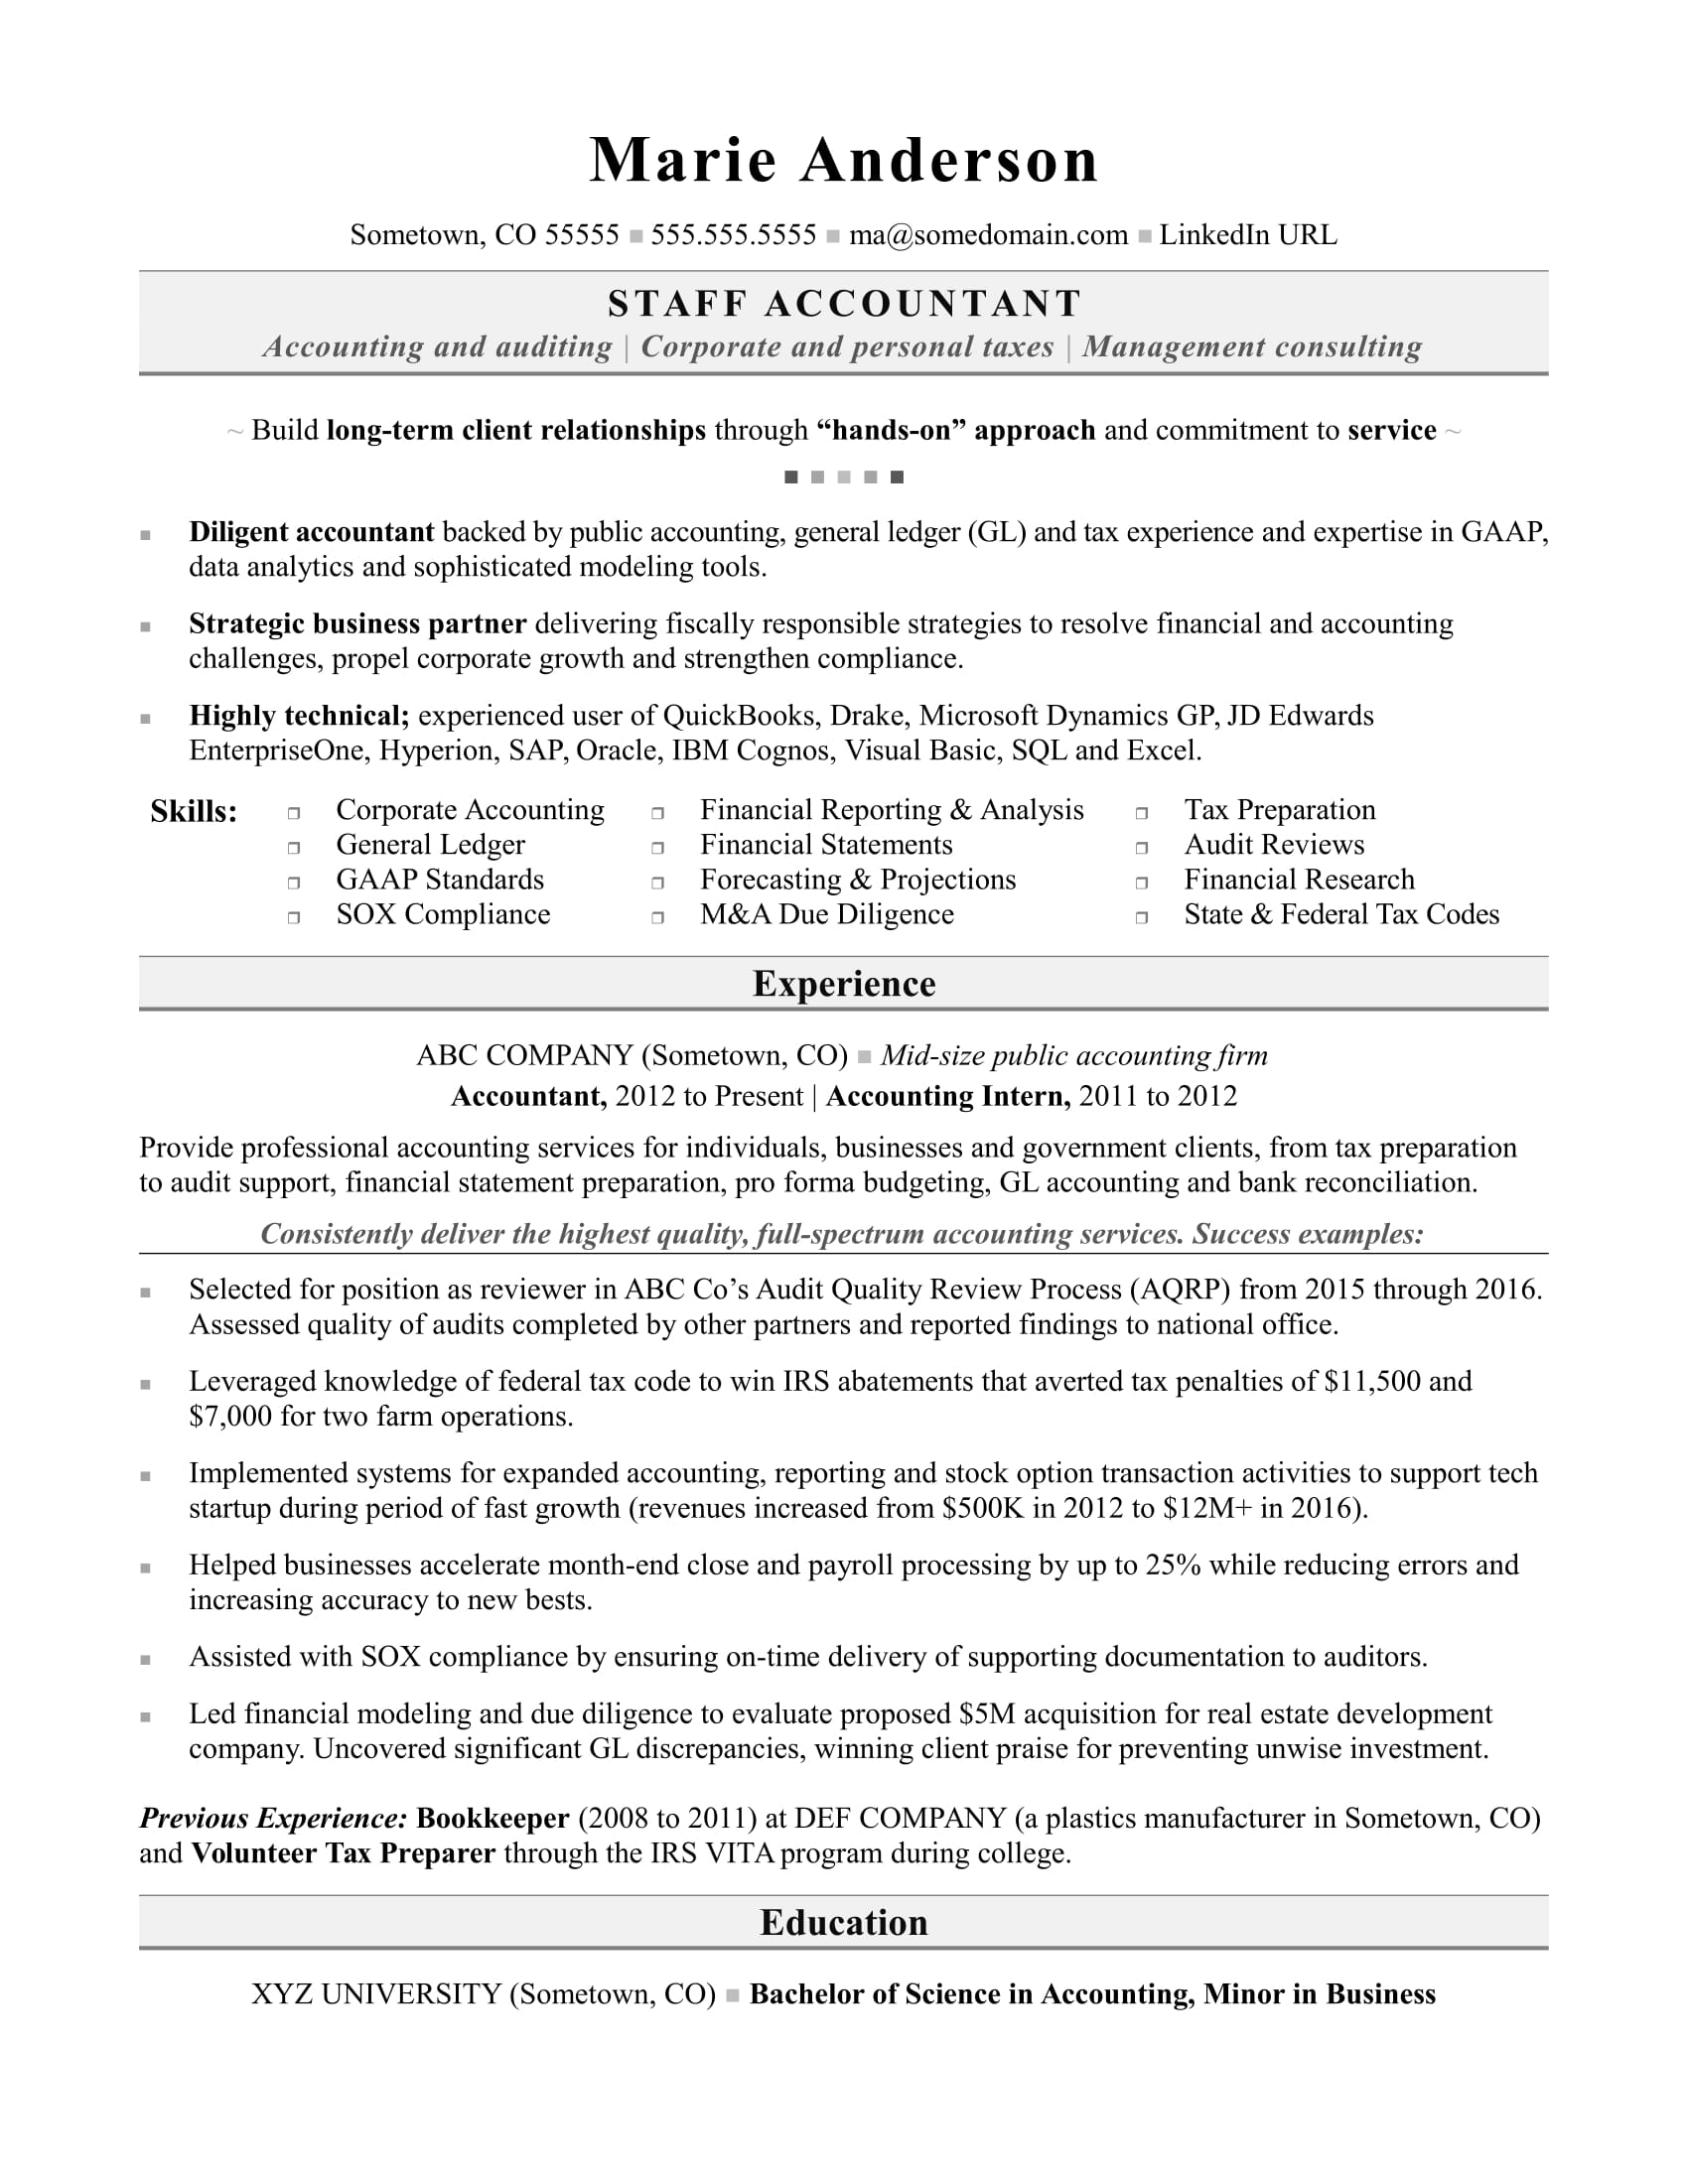 accounting resume sample monster staff accountant security plus professional summary for Resume Staff Accountant Resume